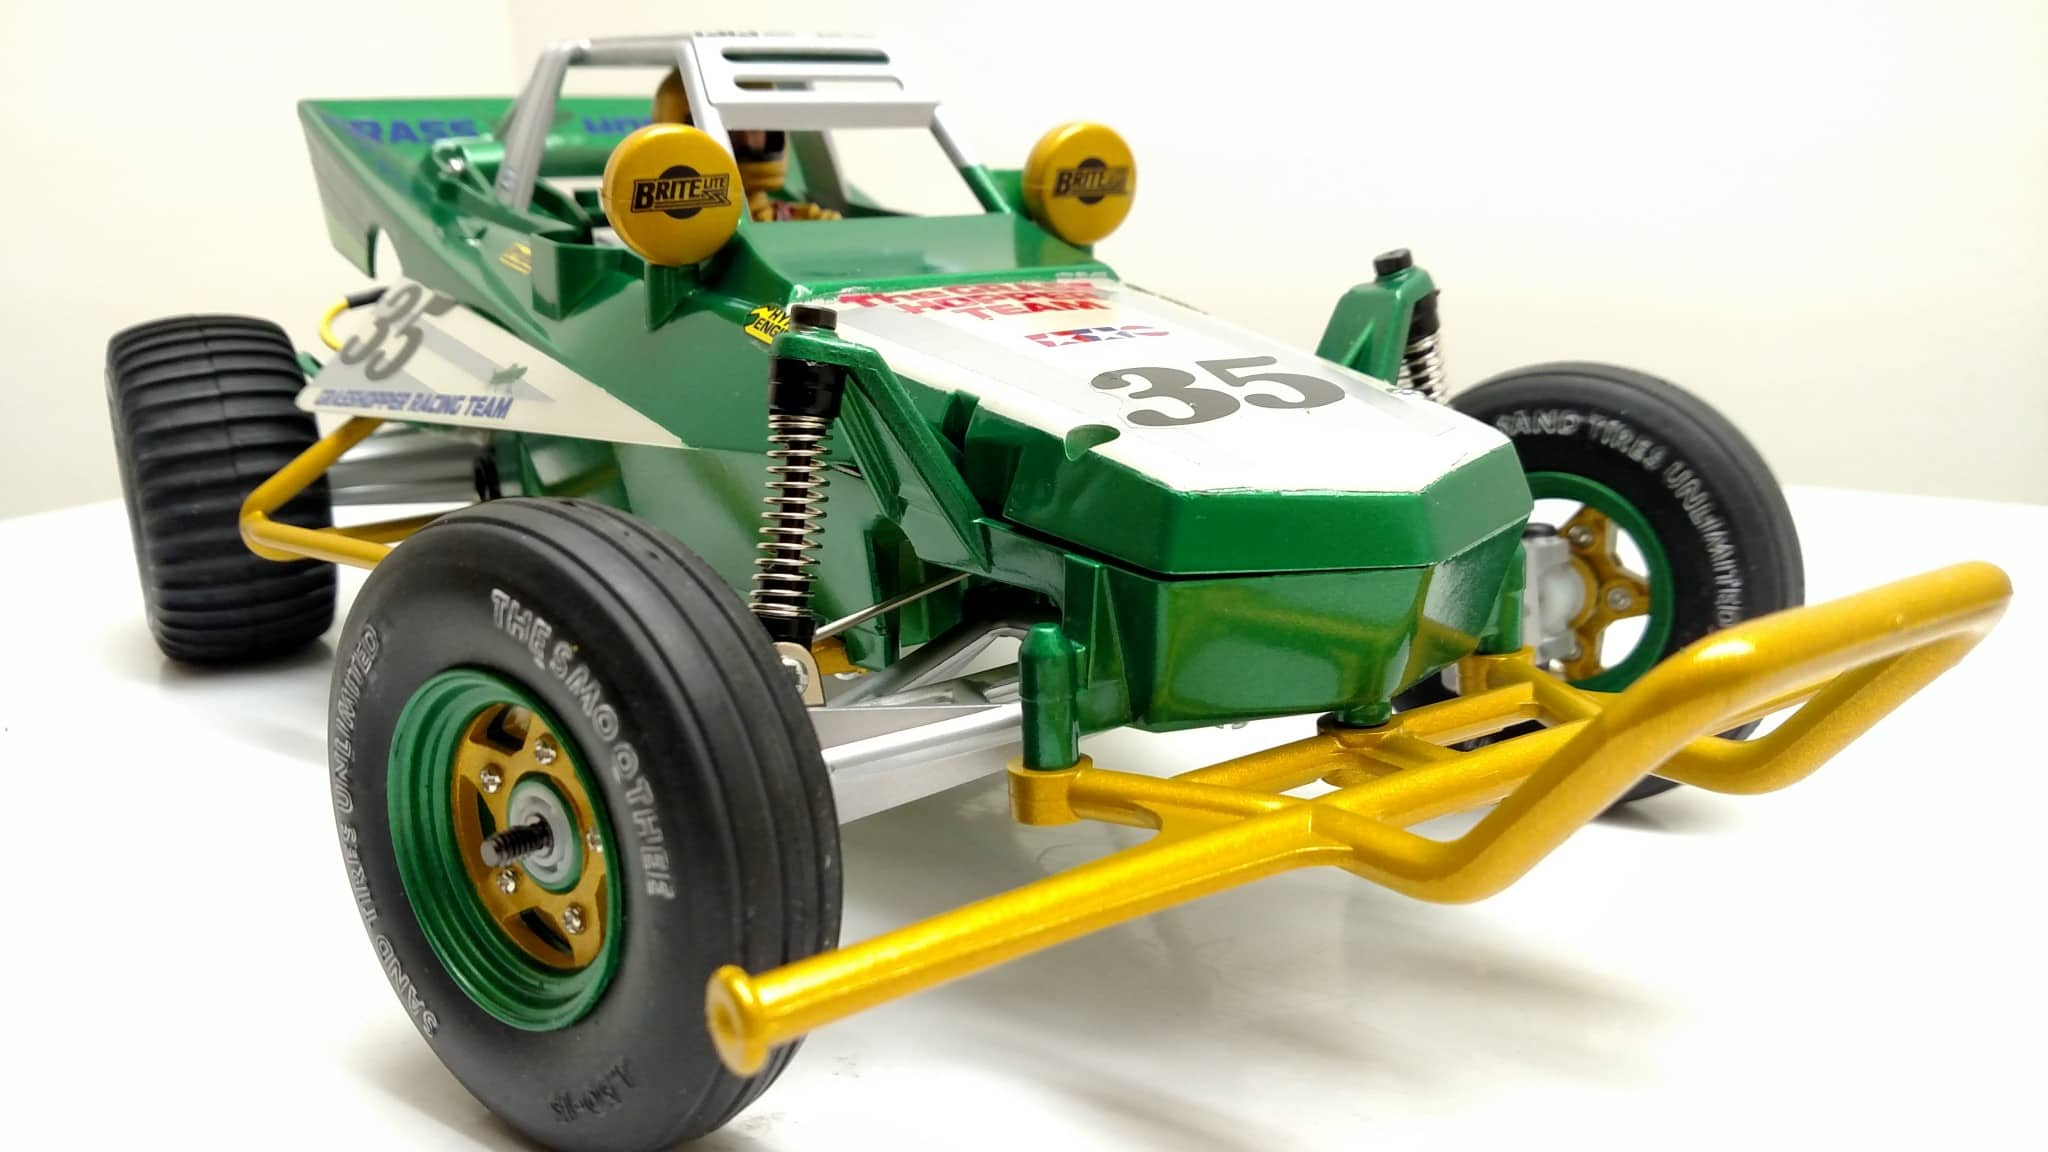 A Clean, Green Tamiya Grasshopper Build from 2RCProductions - RC Newb